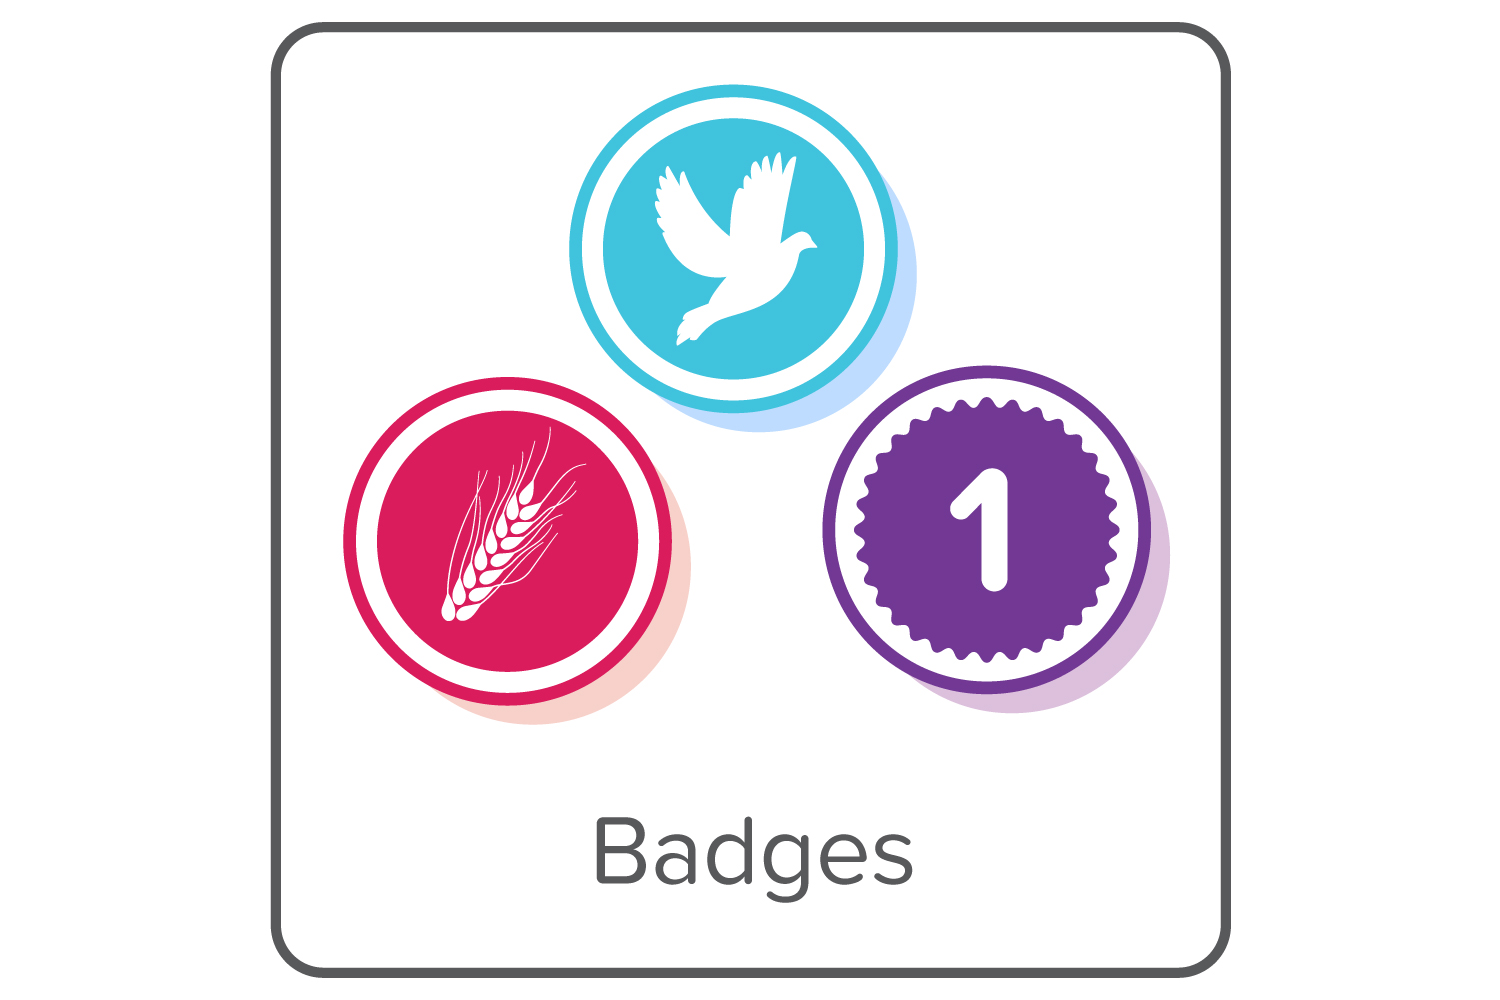 badges_faq.jpg